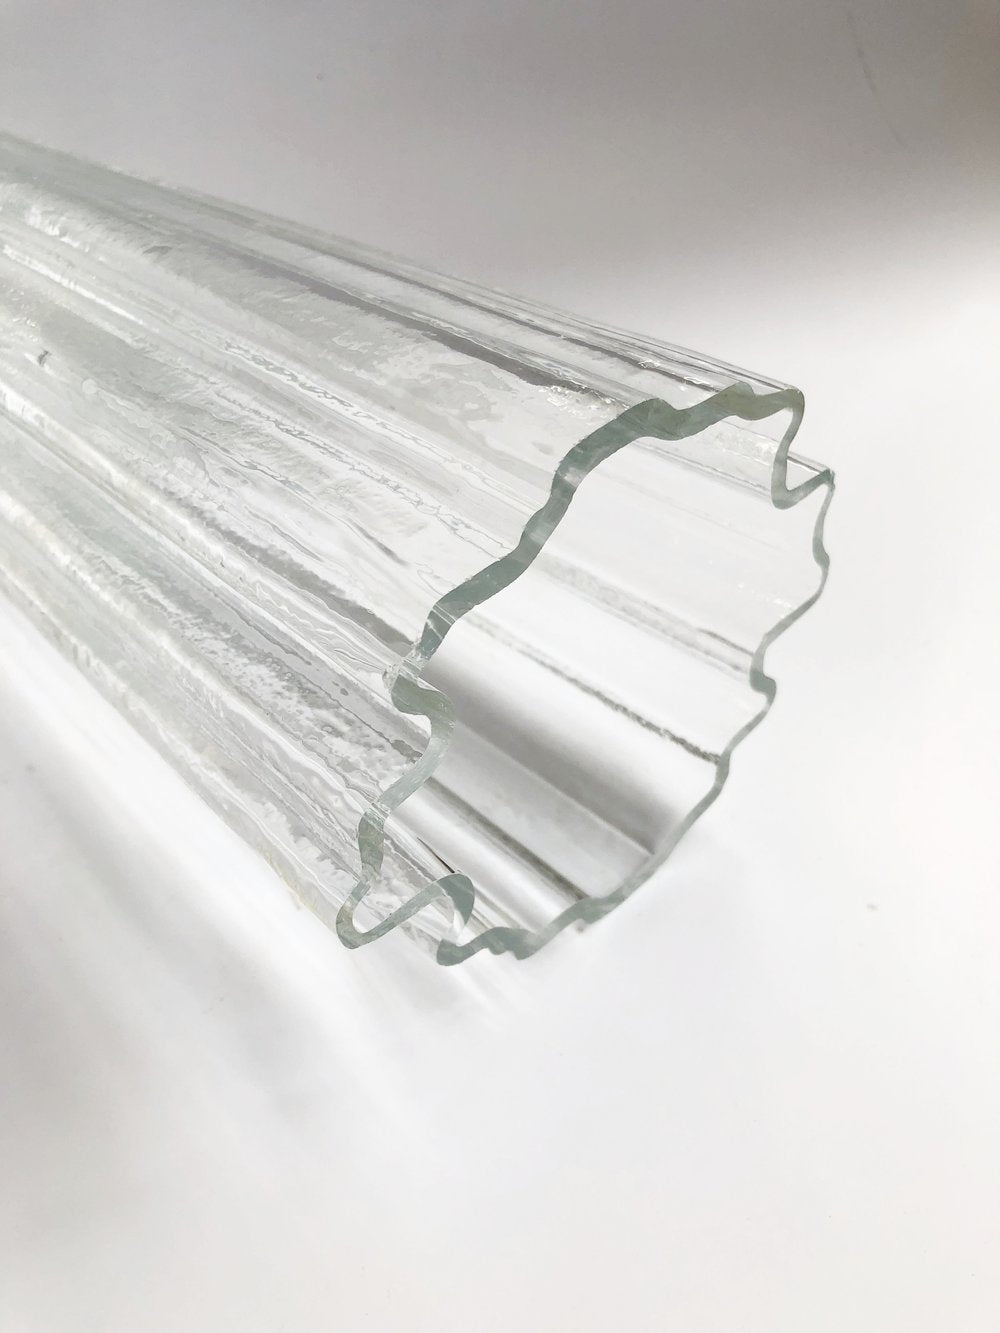 Iitala Glass Vase by Tapio Wirkkala Made in Finland